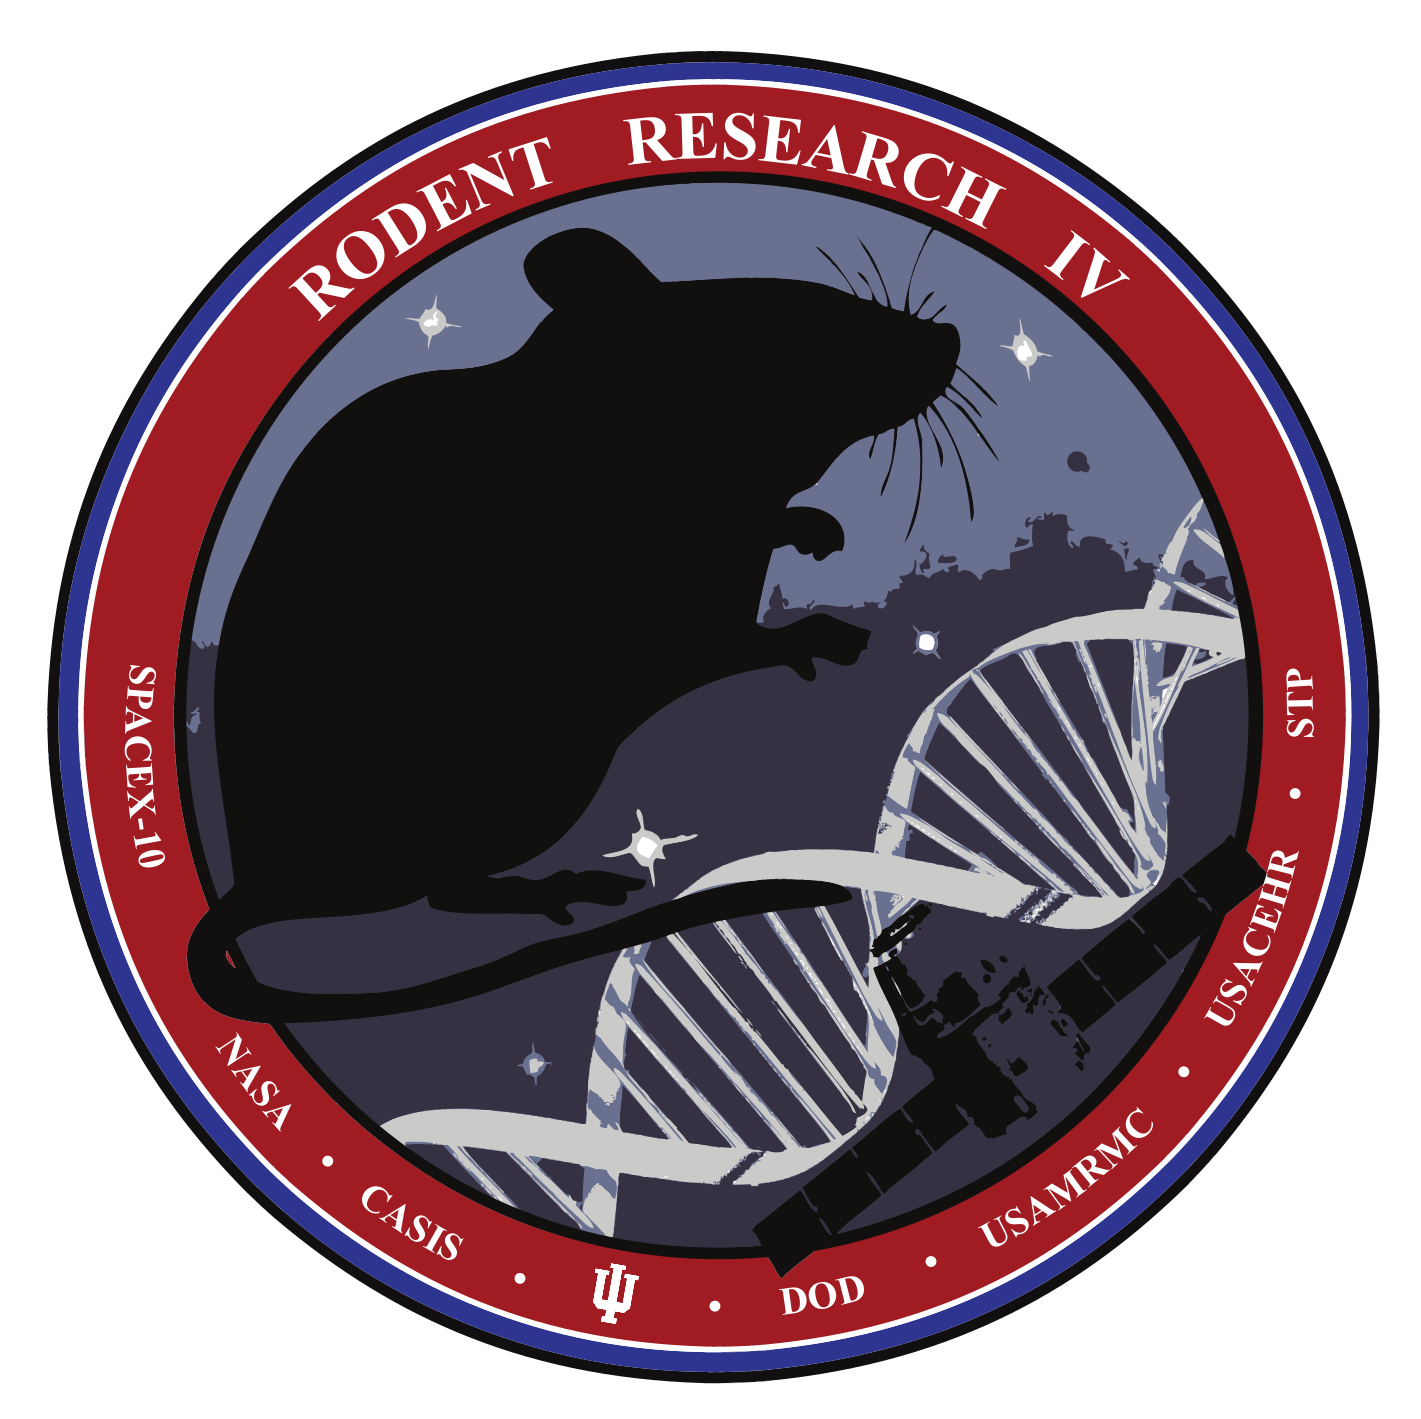 rodent research logo nasa - photo #9